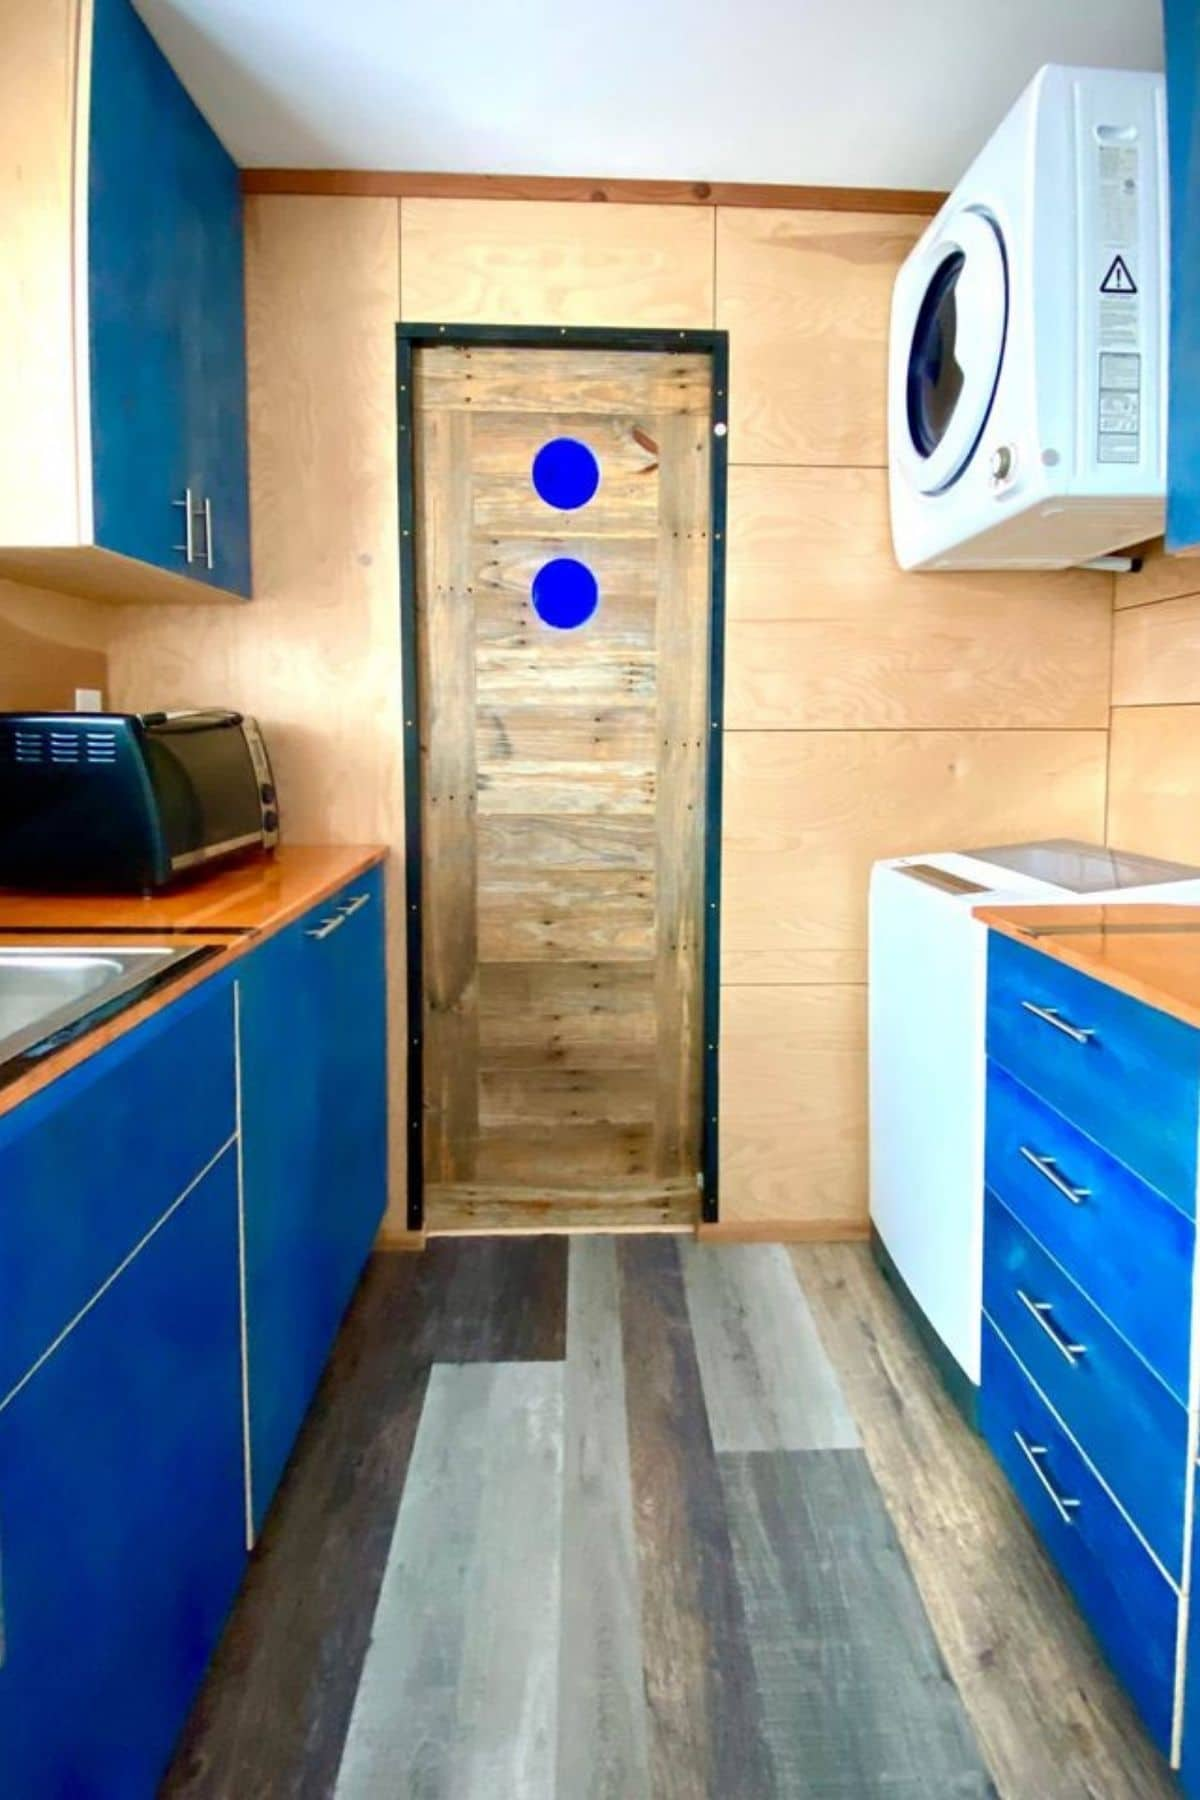 wood door with blue accents at end of kitchen